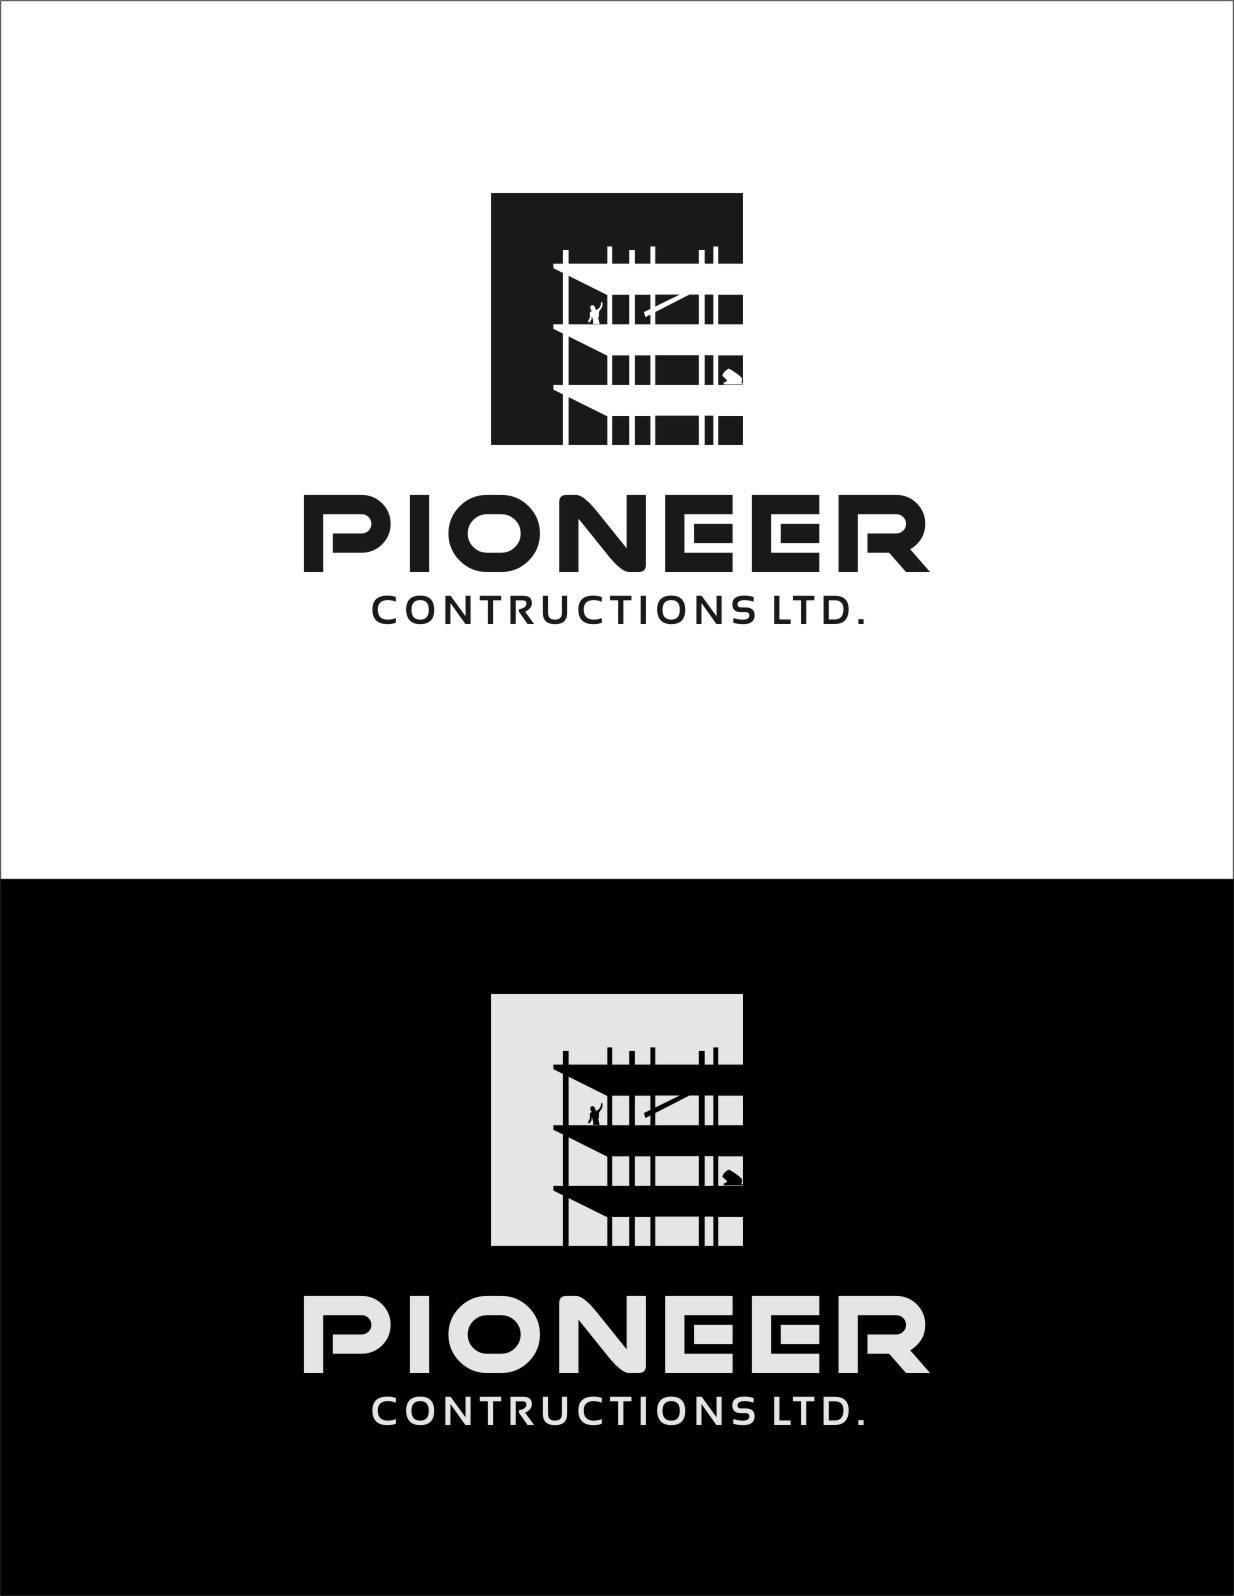 Logo Design by Ngepet_art - Entry No. 95 in the Logo Design Contest Imaginative Logo Design for  Pioneer Construction Ltd.